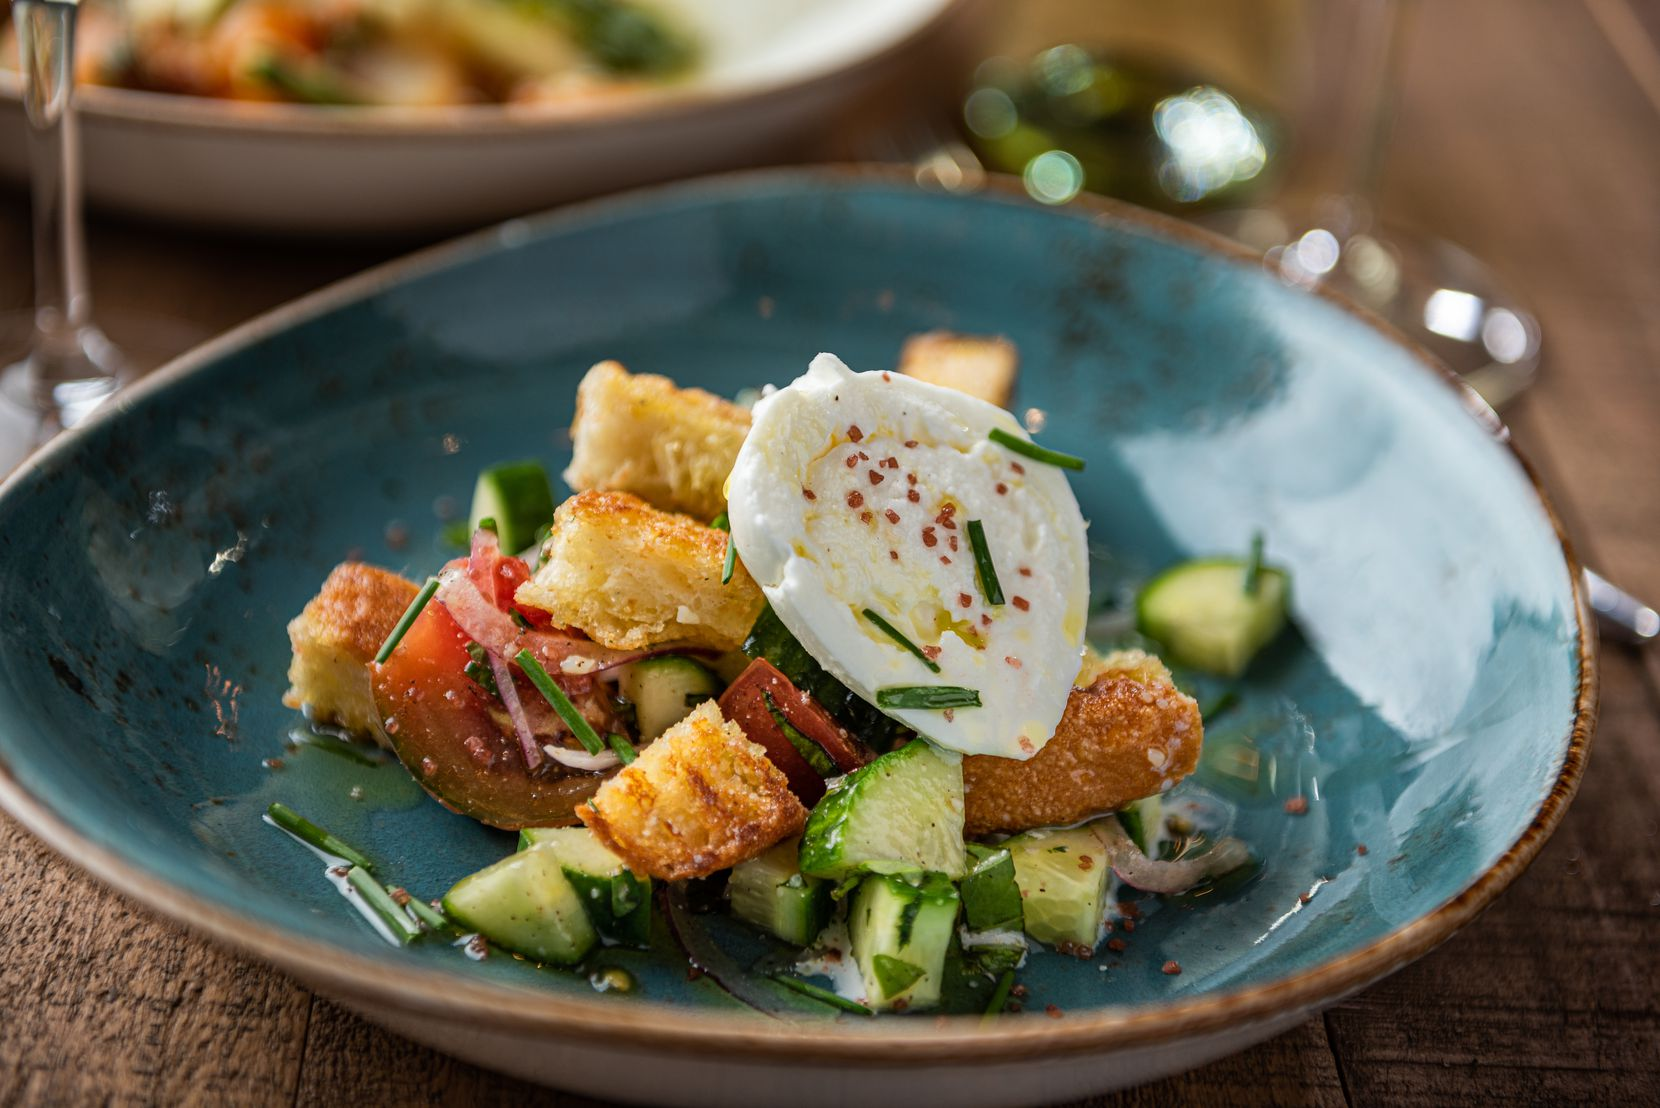 Cru Food And Wine Bar's brunch and dinner menus for Father's Day include heirloom tomato and burrata salad.